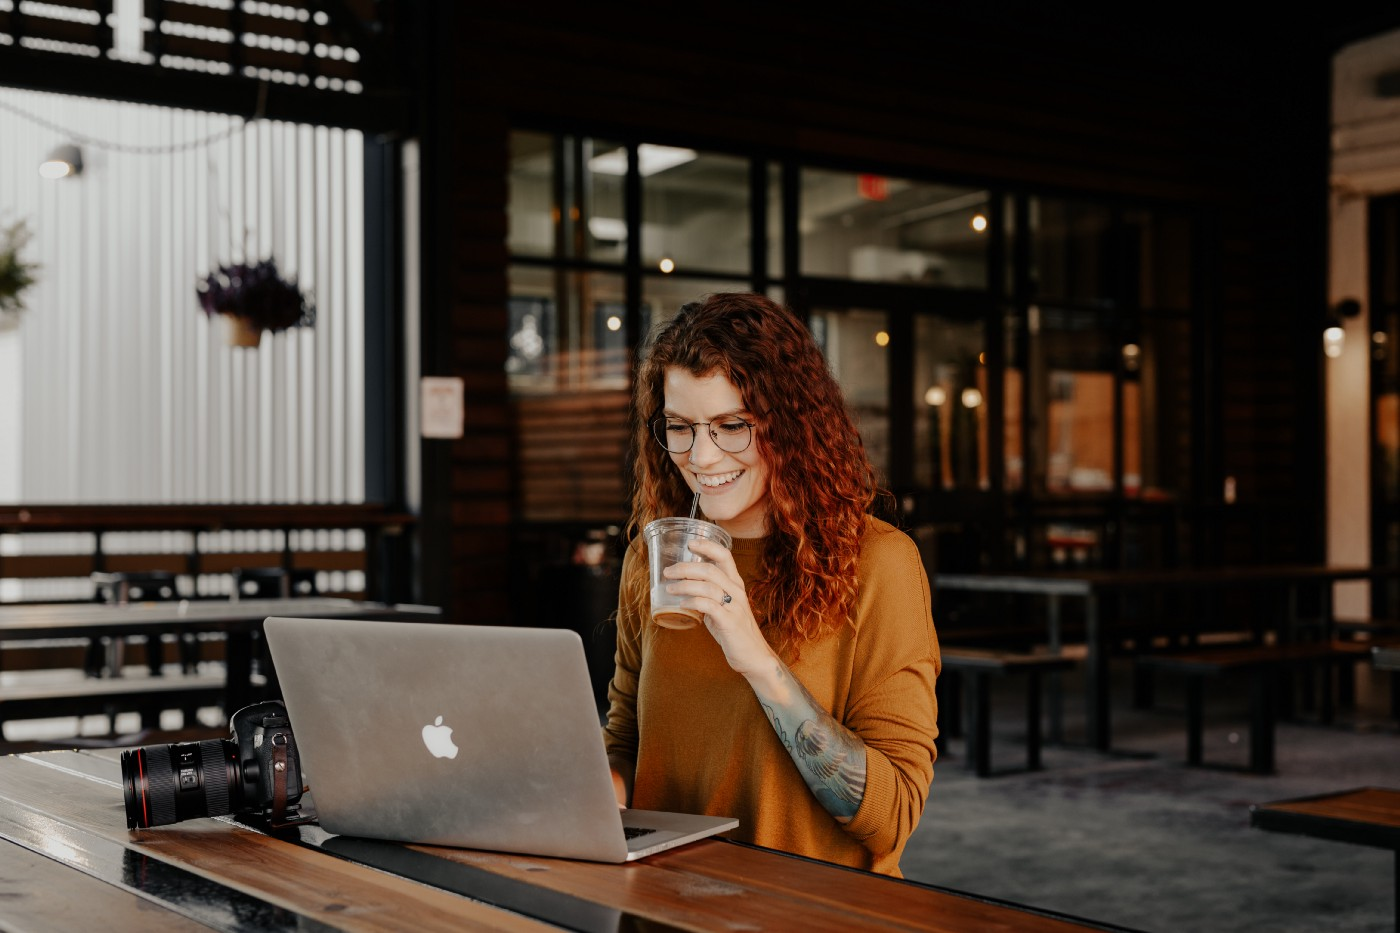 Woman sitting at a bench, working on her computer with a drink in hand